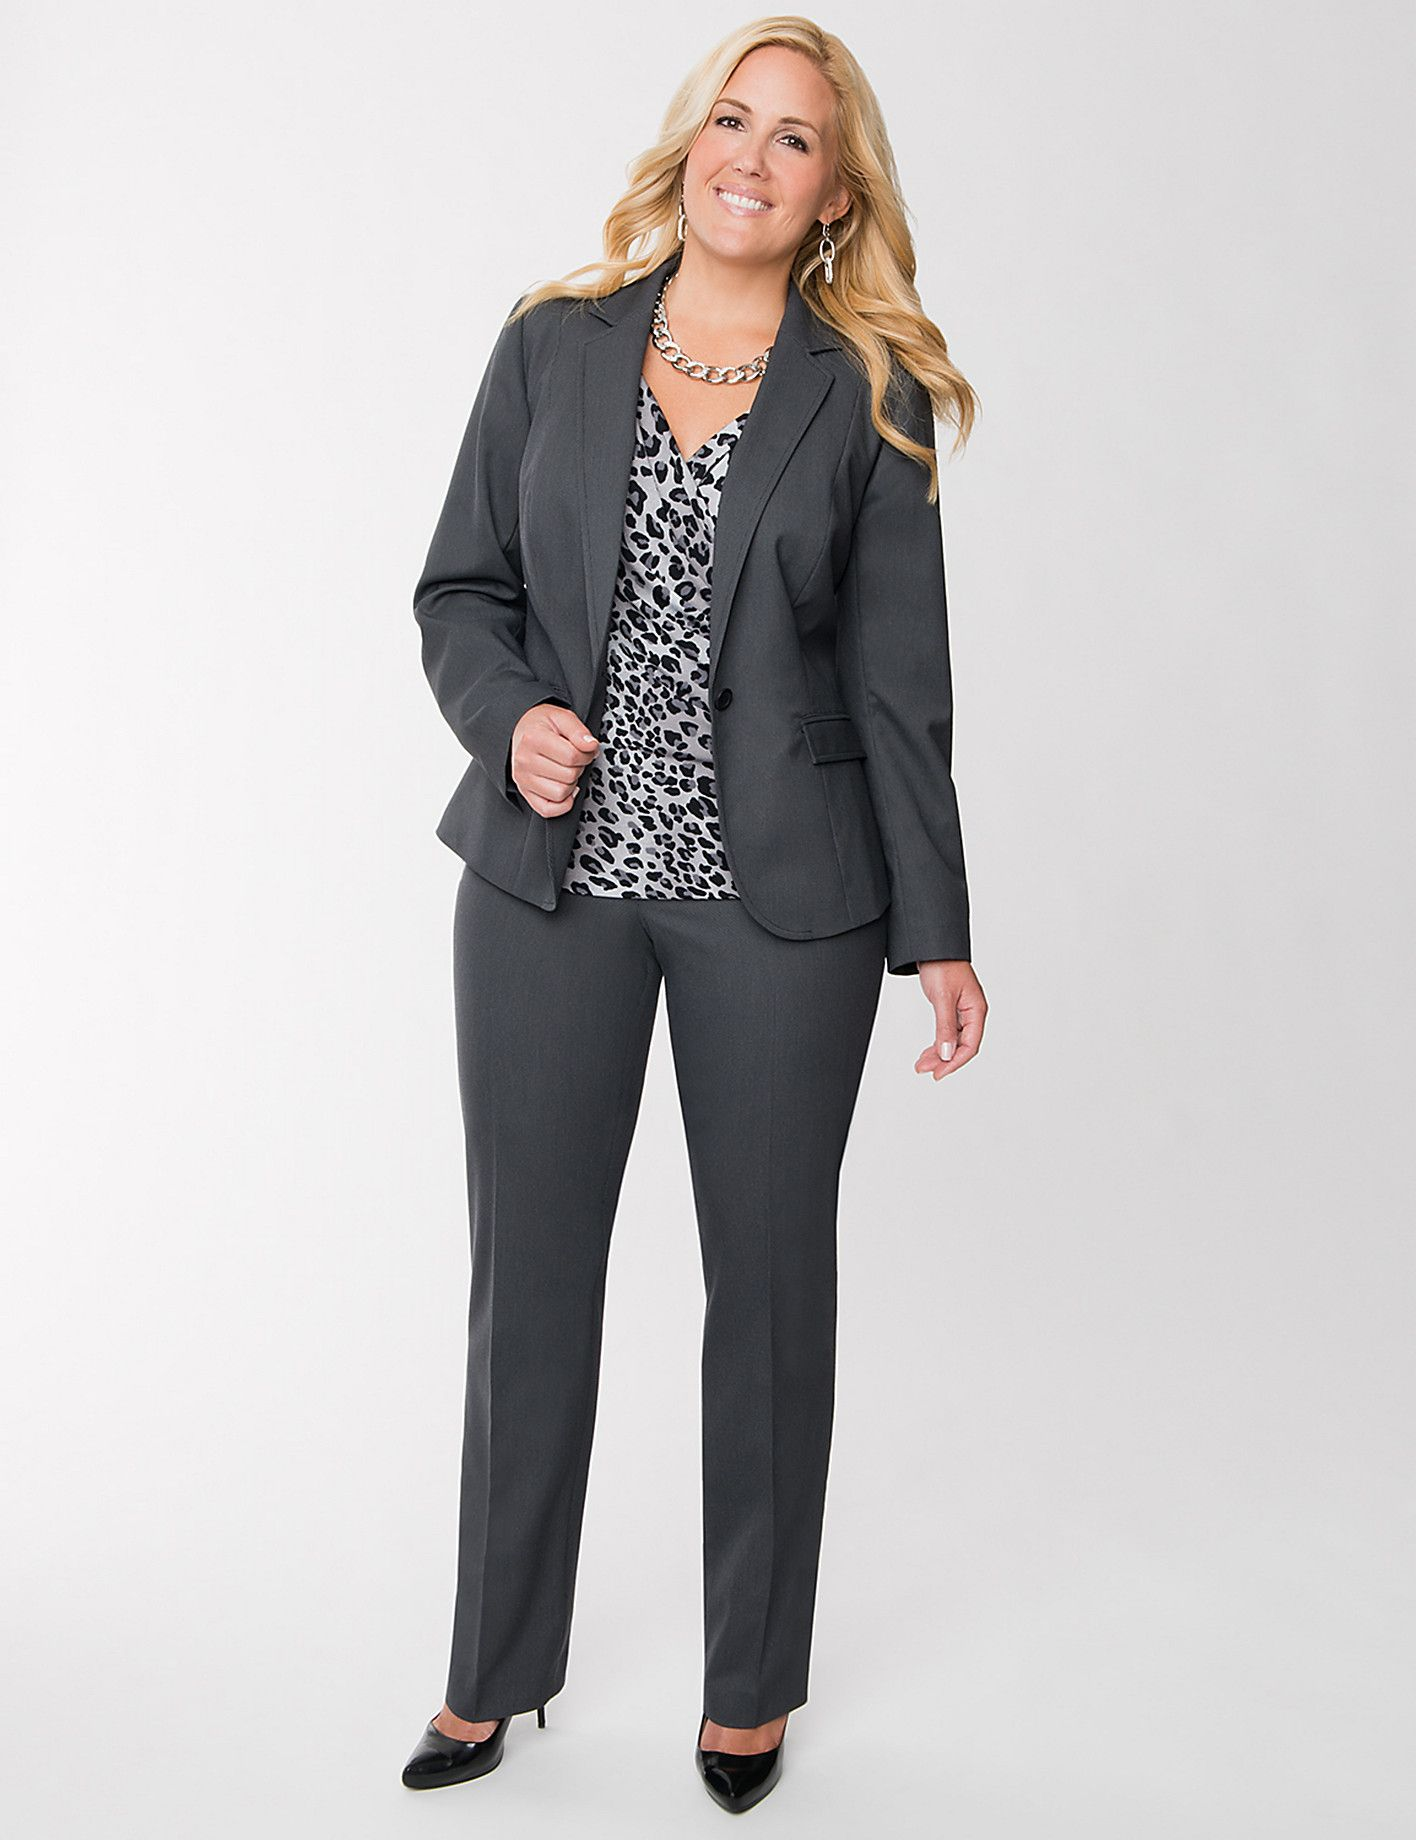 ec9edd1fb86 summer business casual attire for women in academia plus size - Google  Search